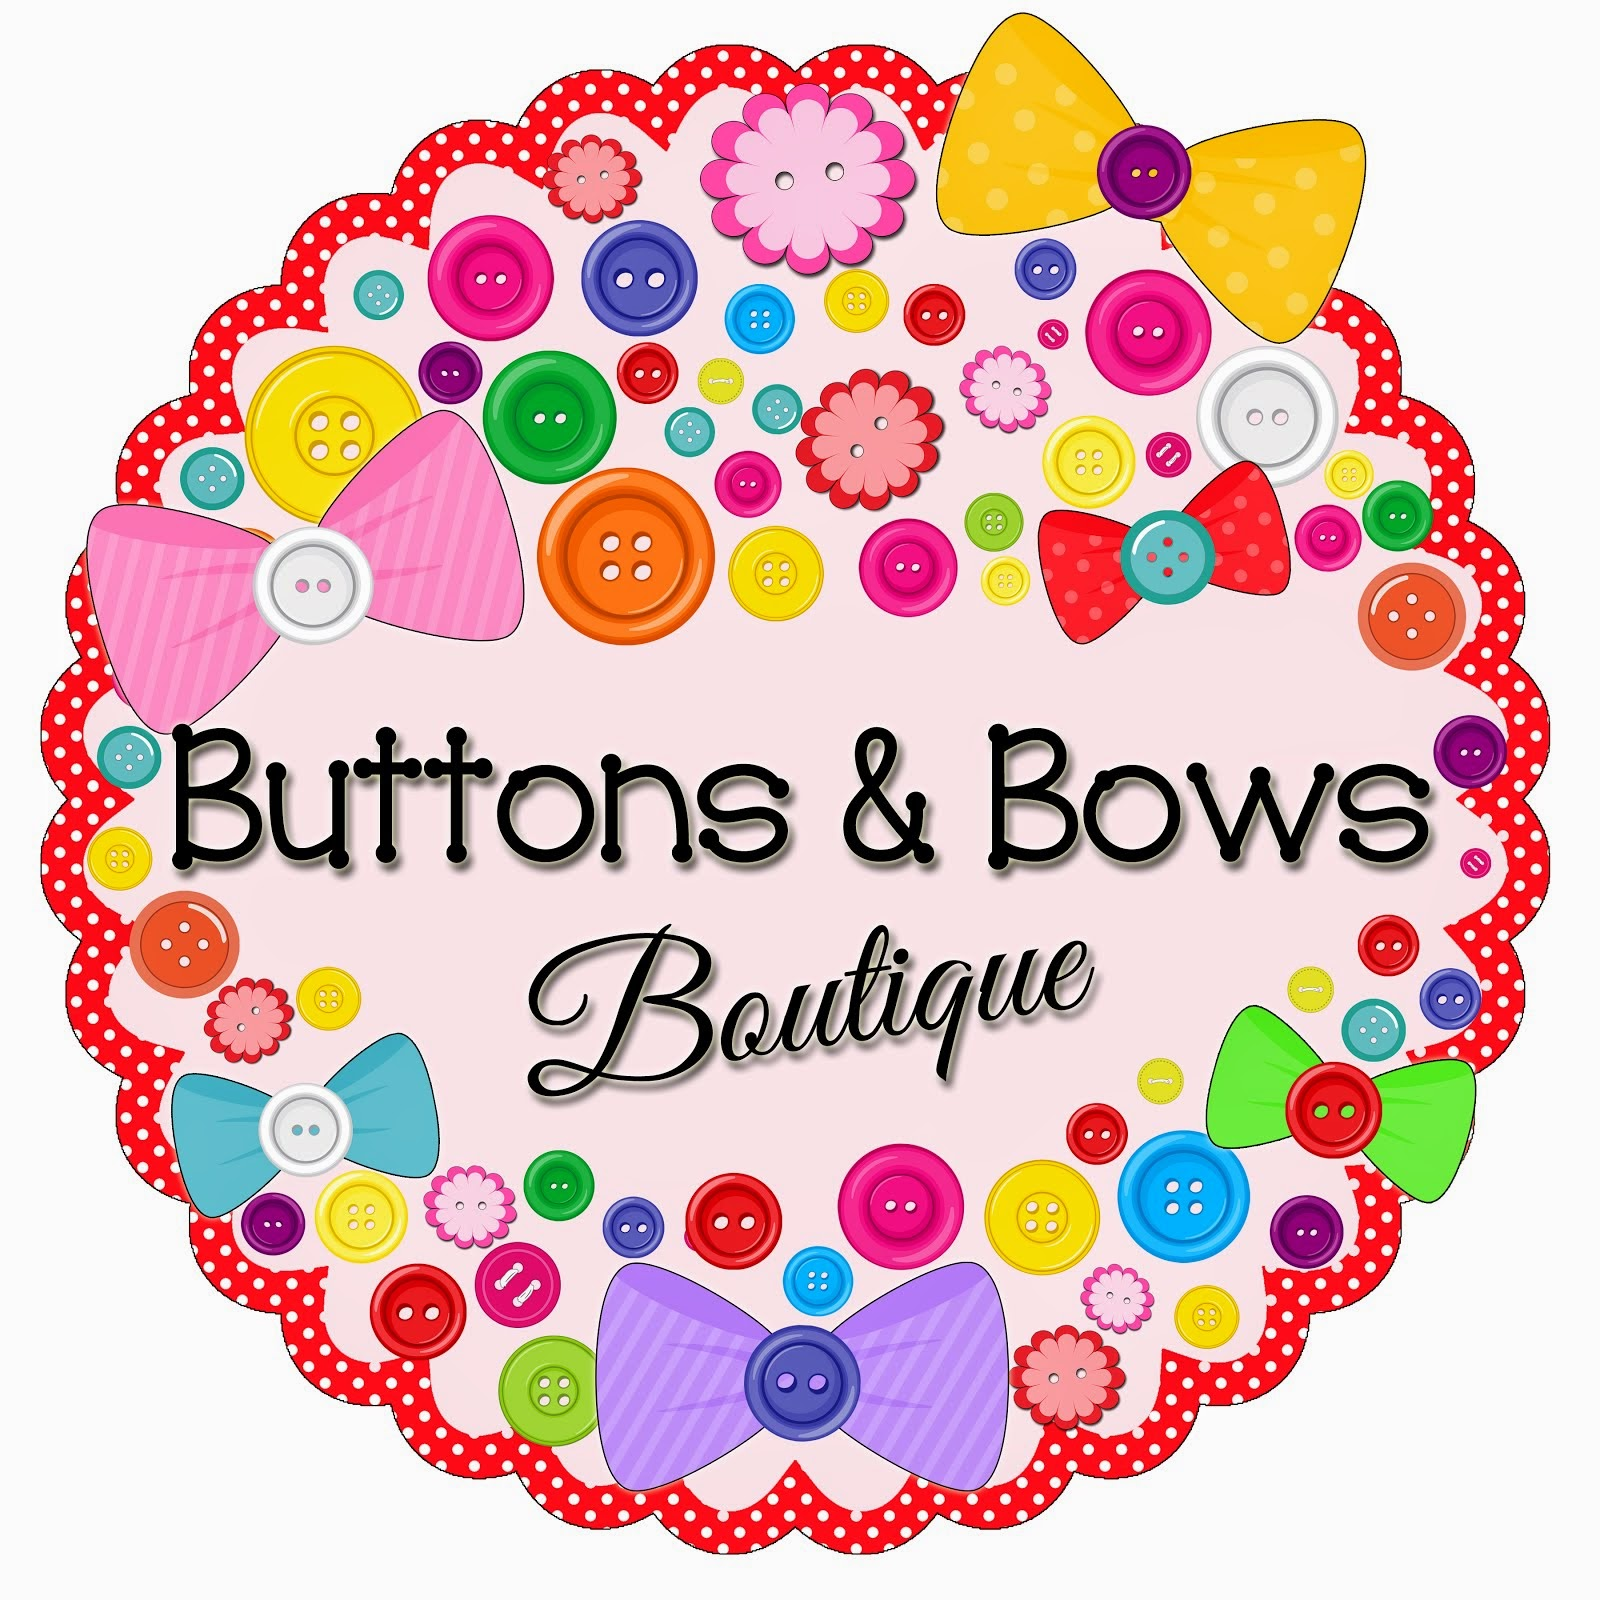 Buttons & Bows Boutique